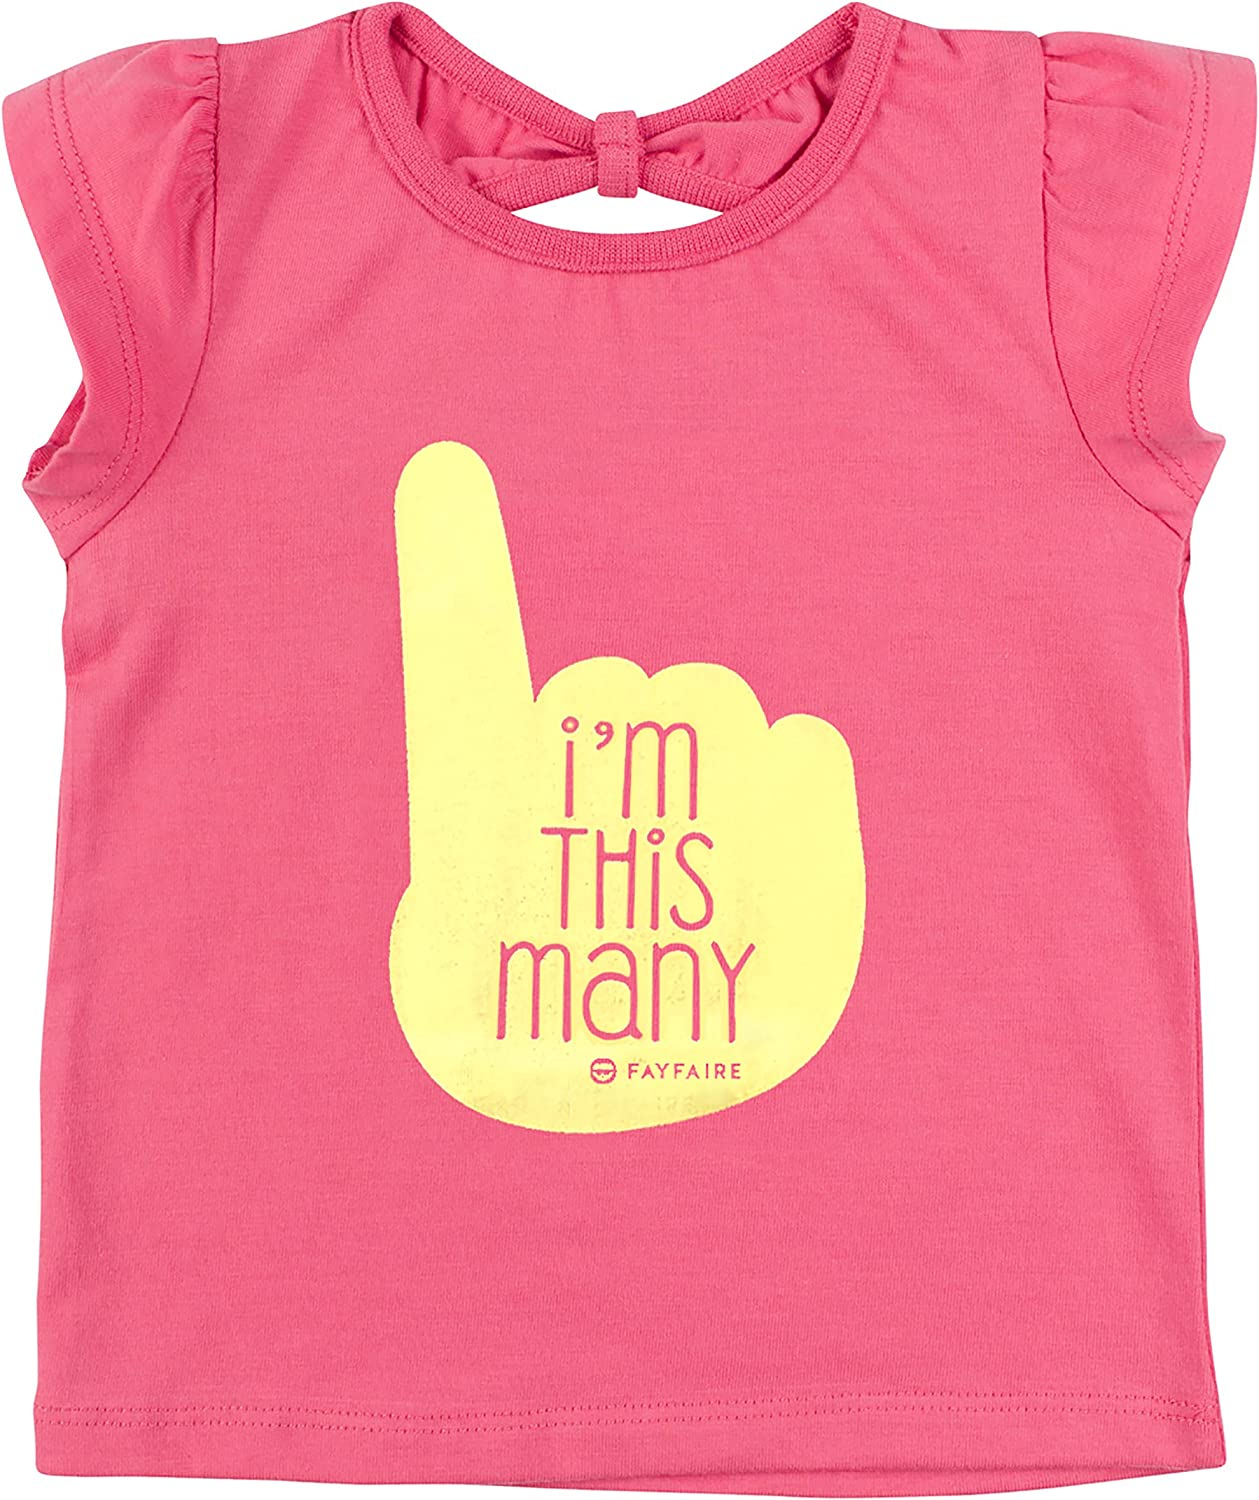 Fayfaire First Birthday Outfit Girl   1st Bday Gift Shirt & Tutu I'm This Many 12M-18M